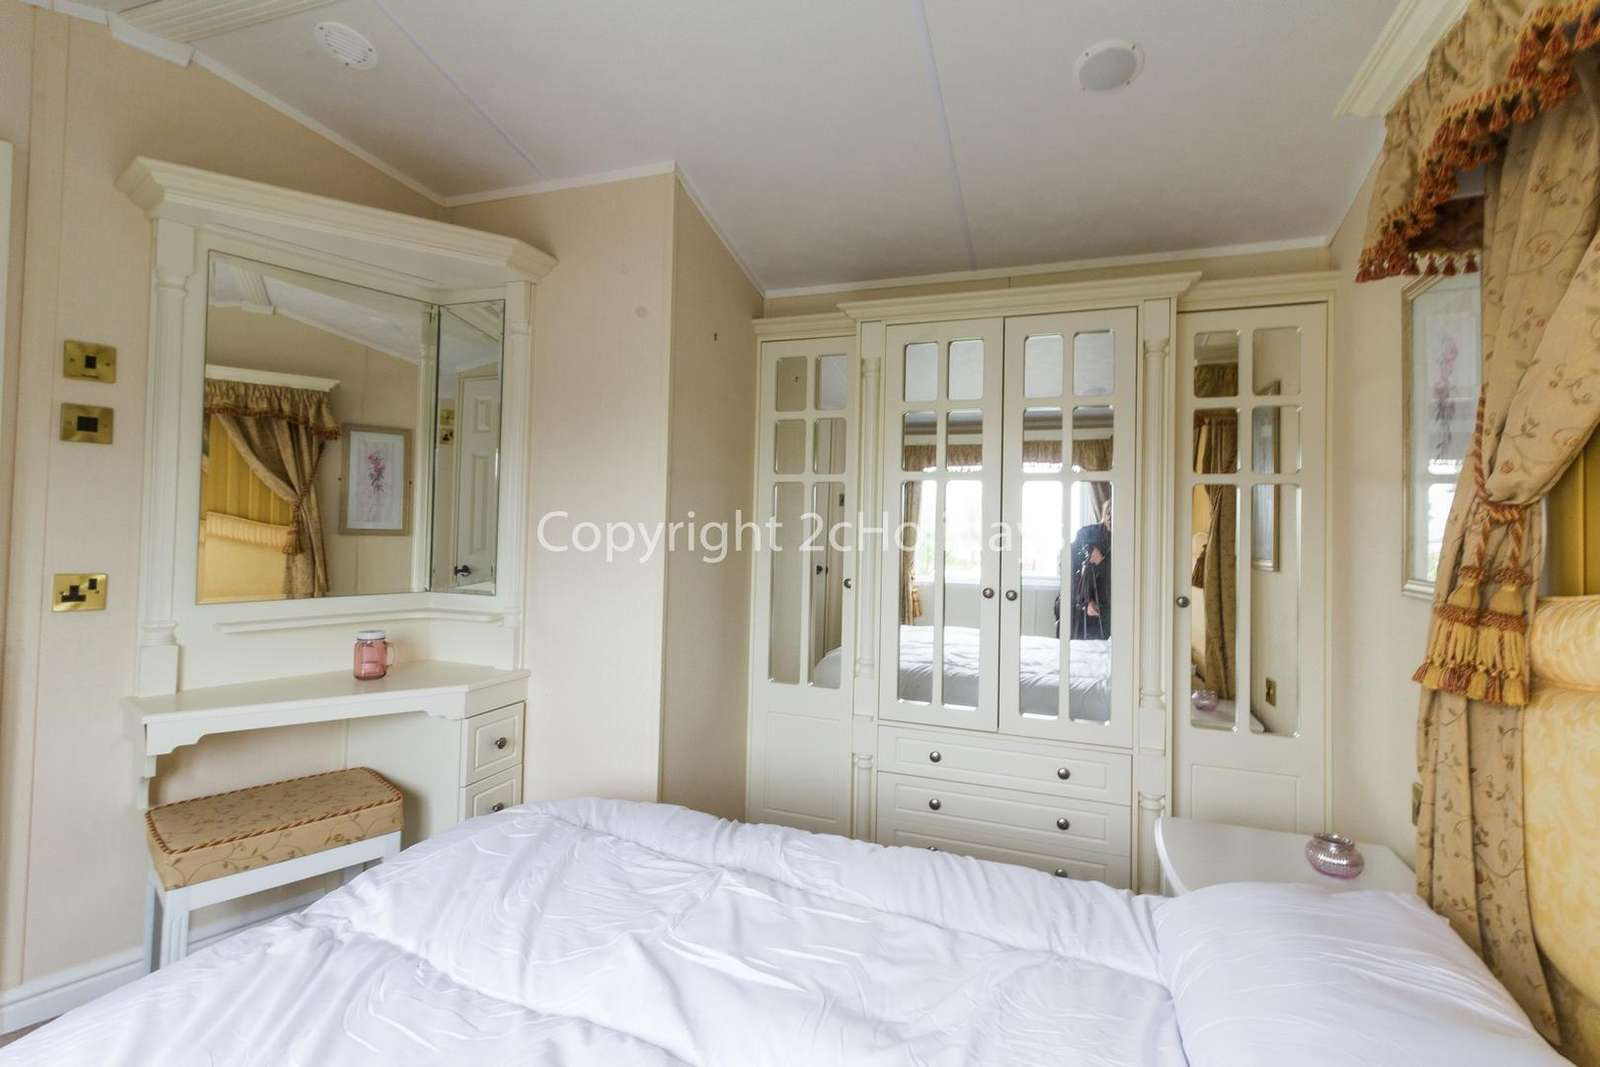 You can find plenty fo storage space in this master bedroom!